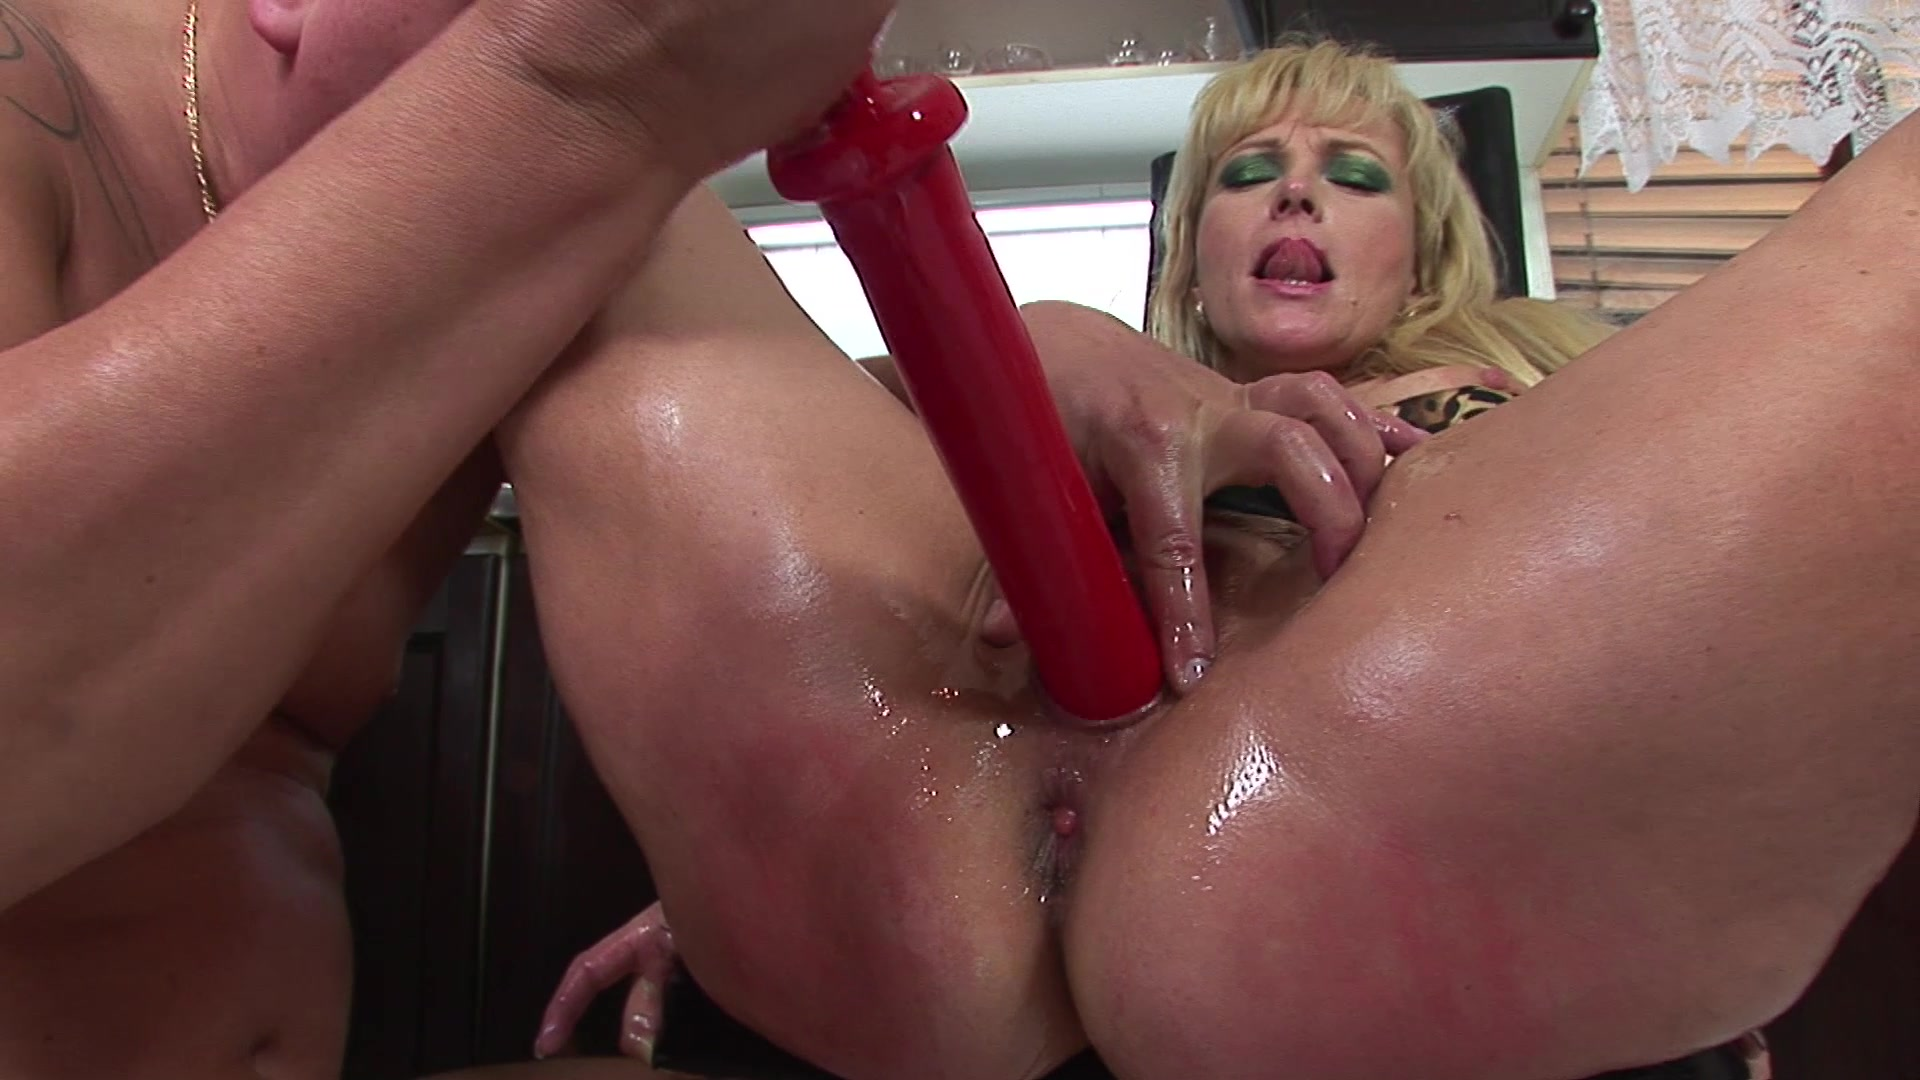 Ronni recommend Lesbian soccer mom porn